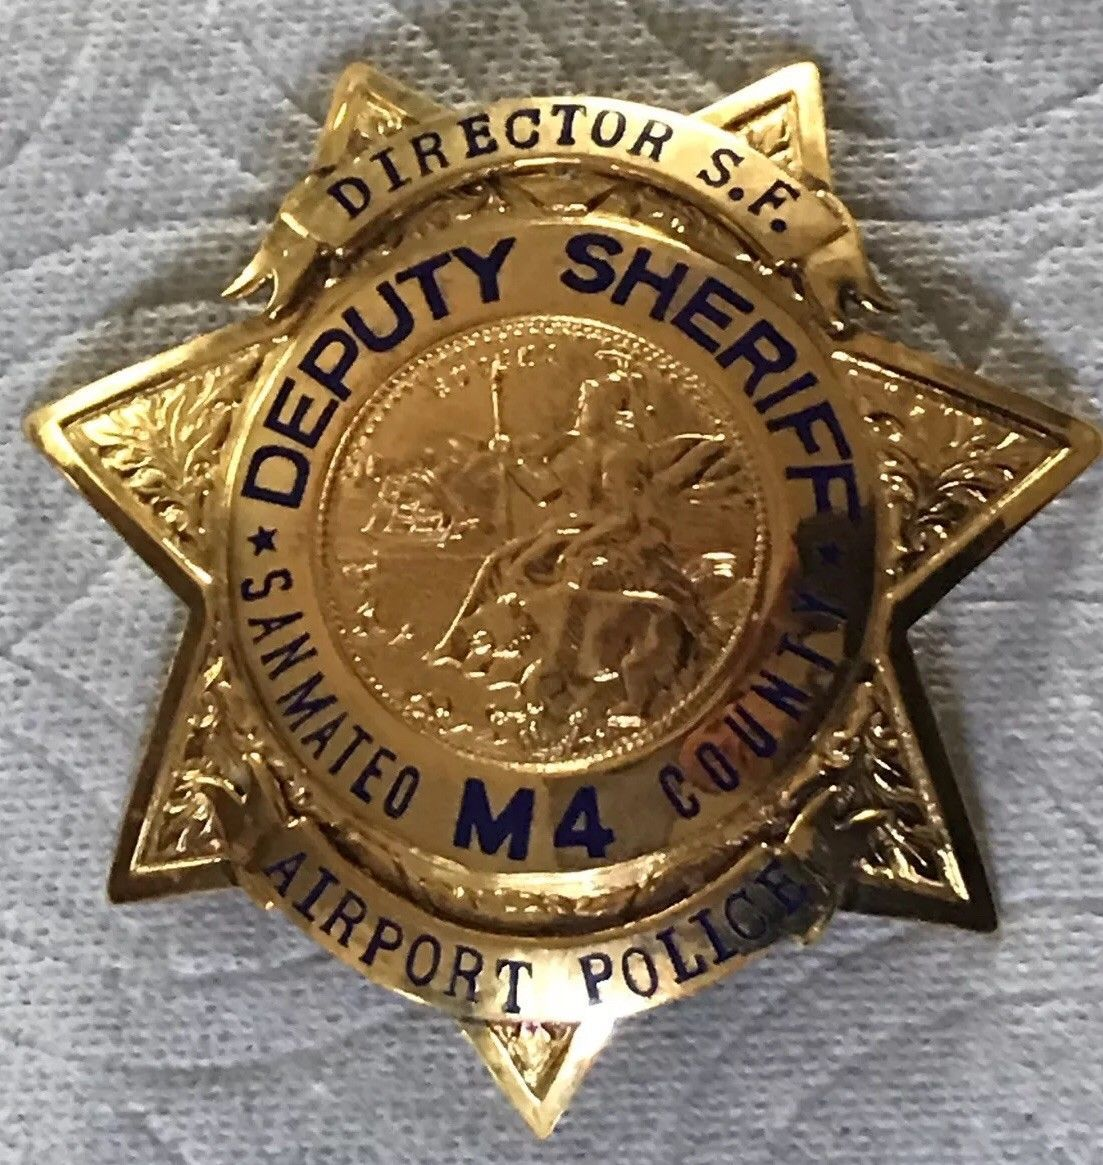 Director San Francisco Airport Police San Mateo County Sheriff Presented To Emmitt Smith By Members Of The Police Irvi Police Badge Fire Badge Car Badges